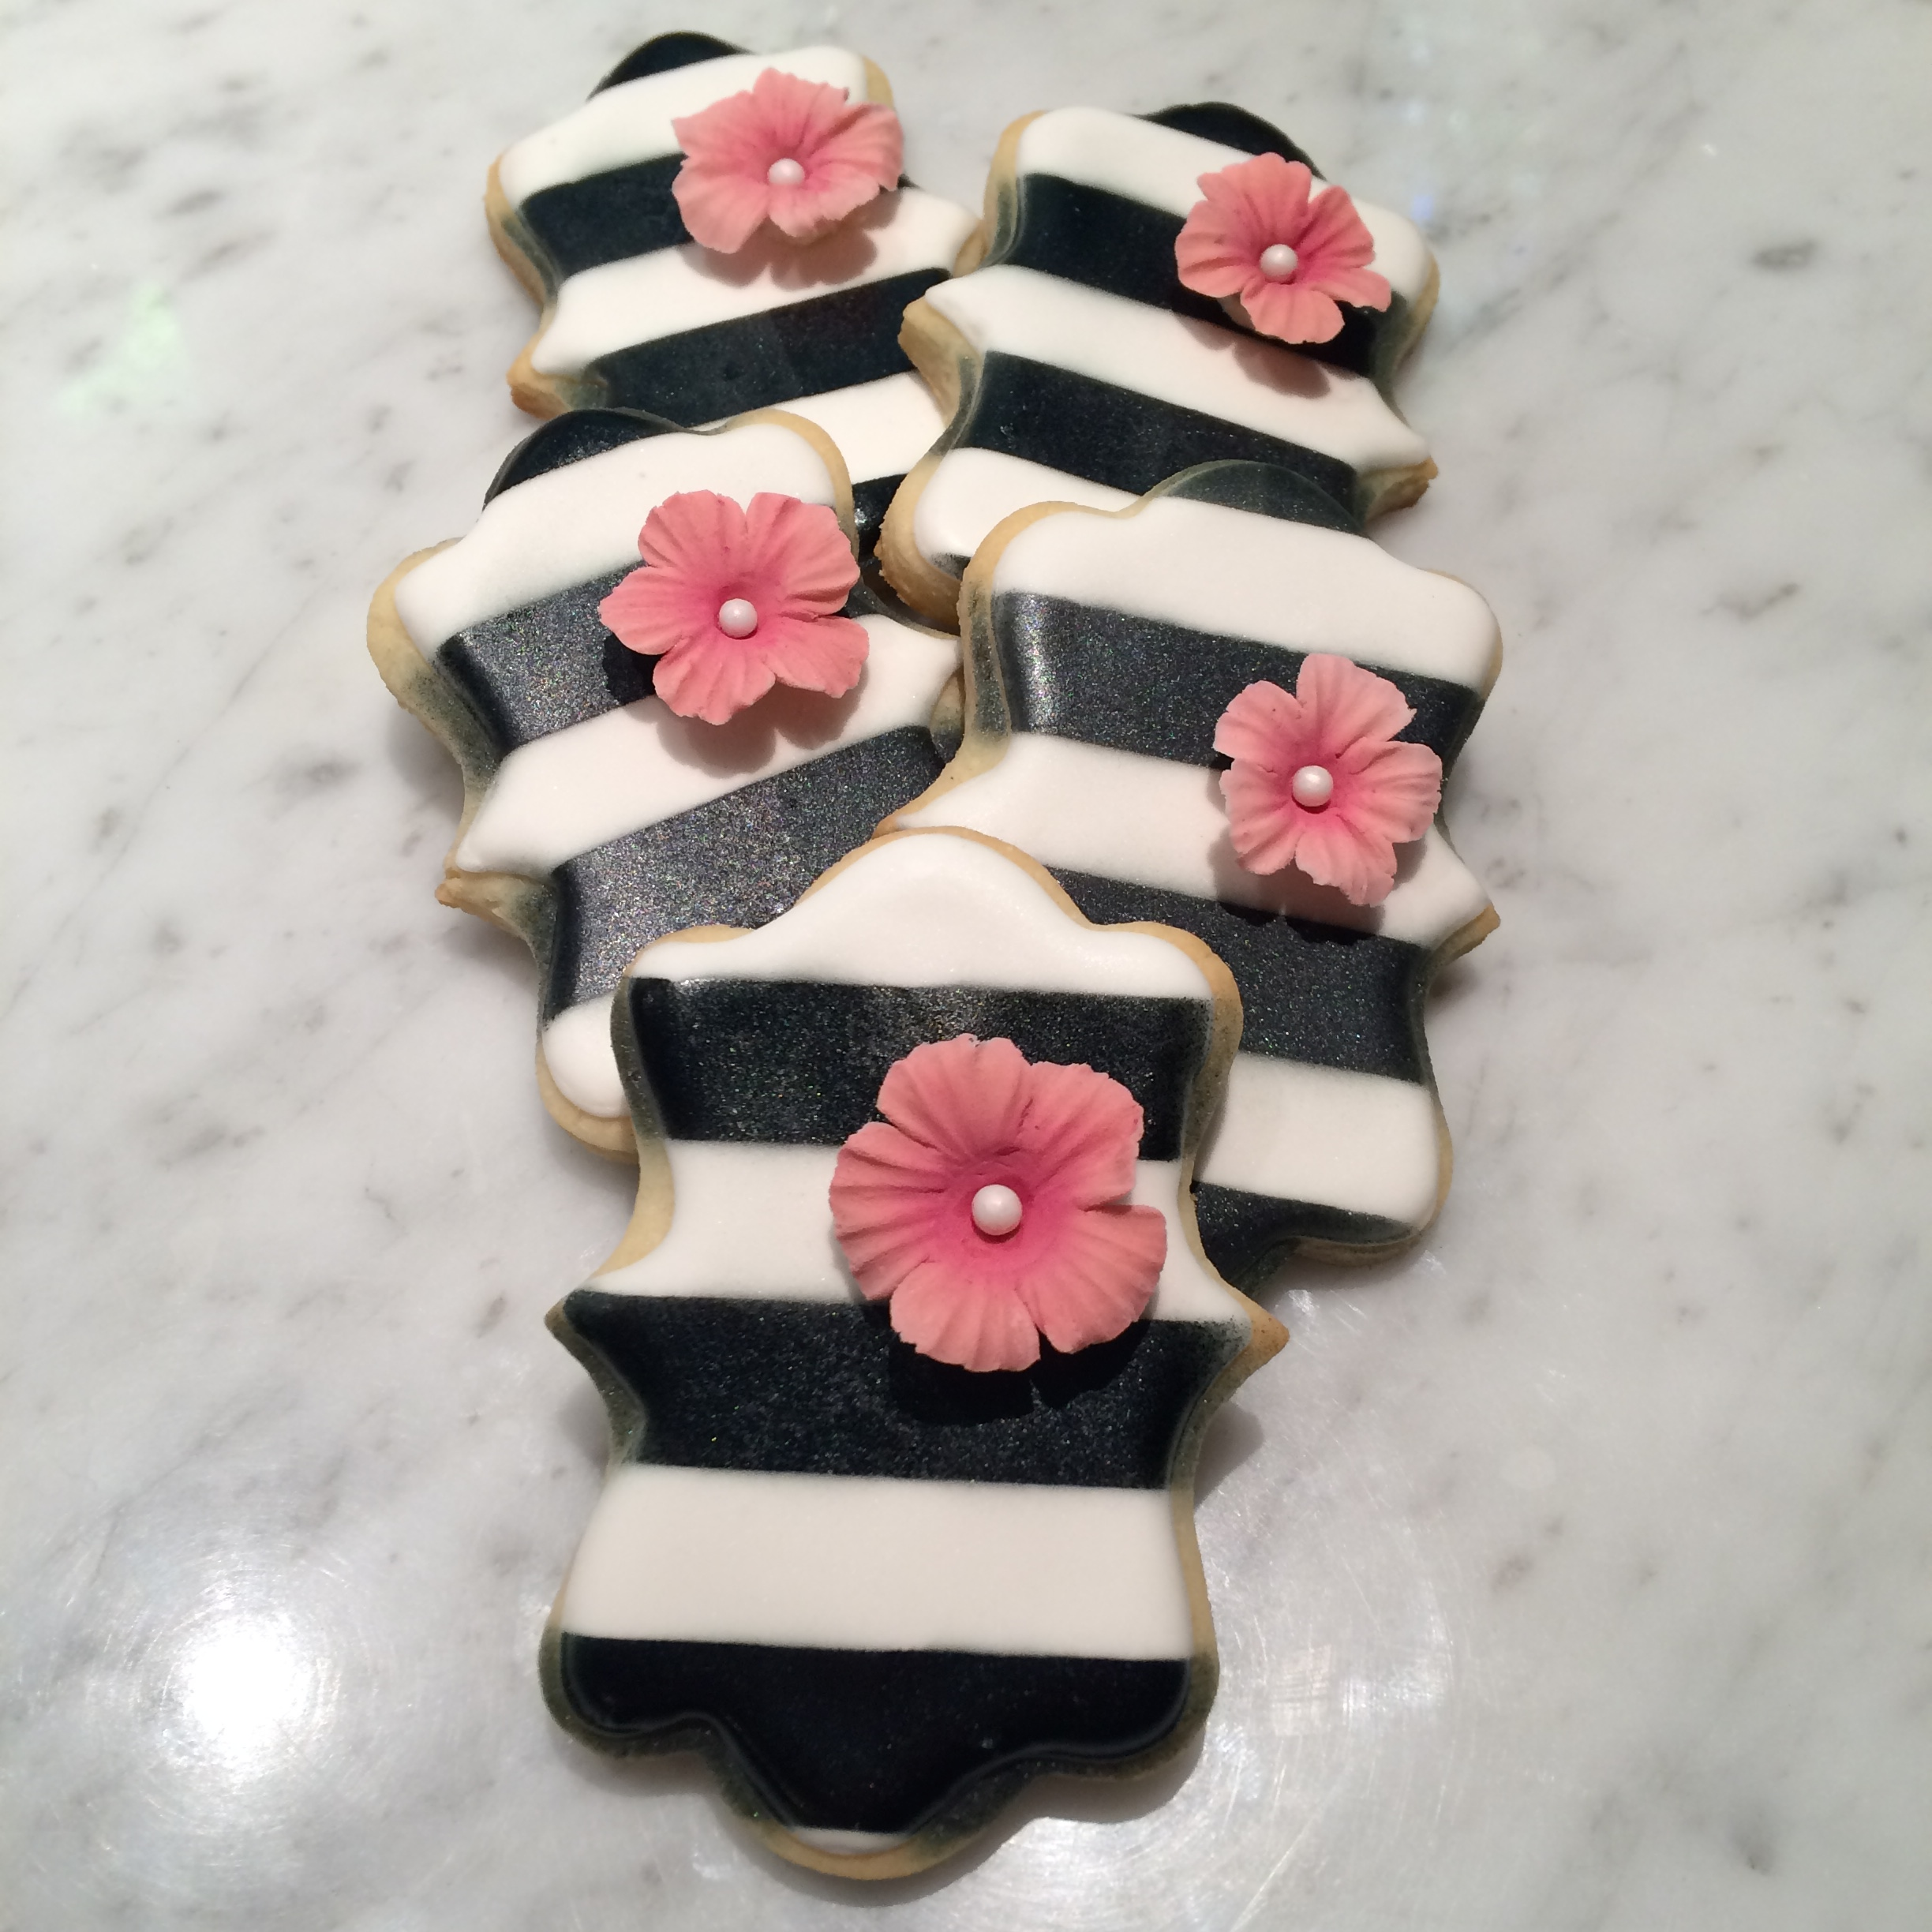 Kate Spade Inspired Cookies by Seed Confections